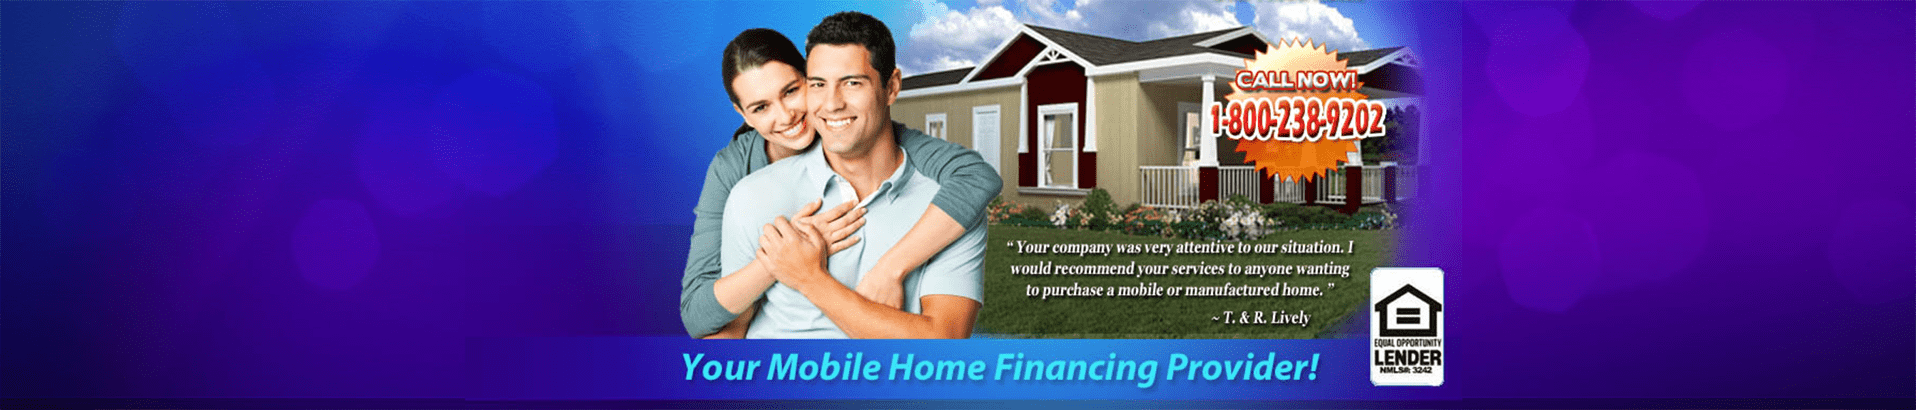 Your Fast & Easy Financing Partner For Mobile Home Loans & Financing